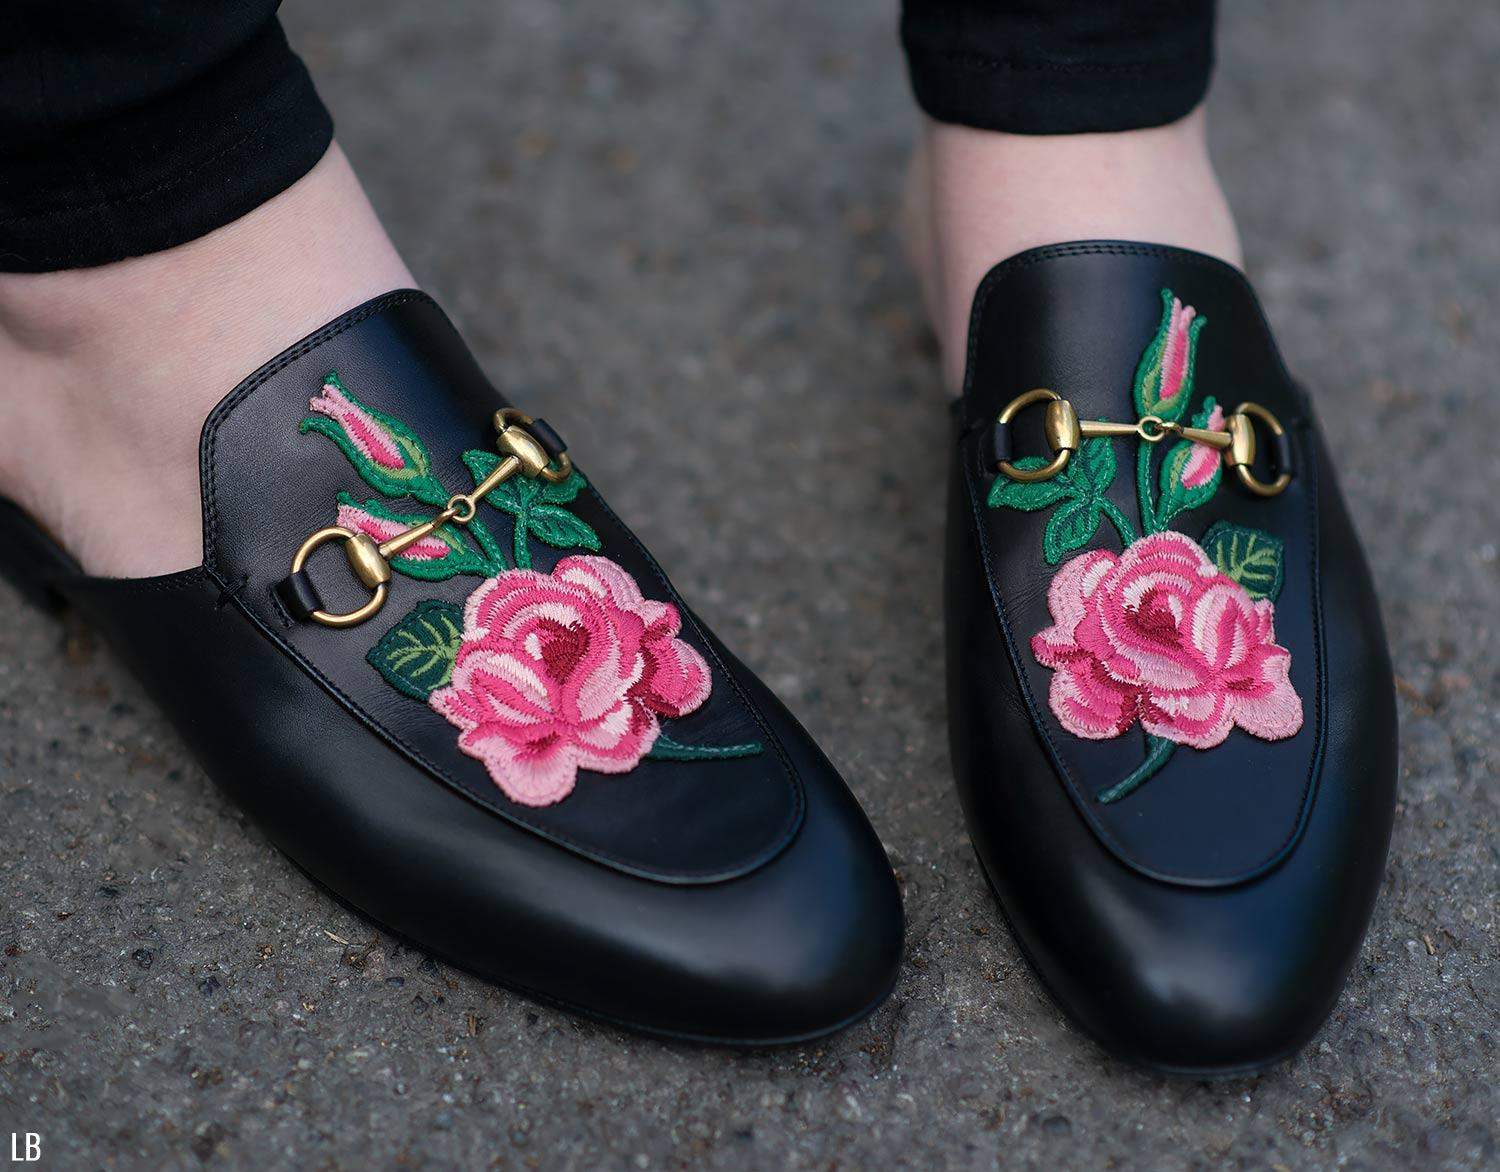 d238f7485ef My New Gucci Princetown Floral Embroidered Loafers Review ...